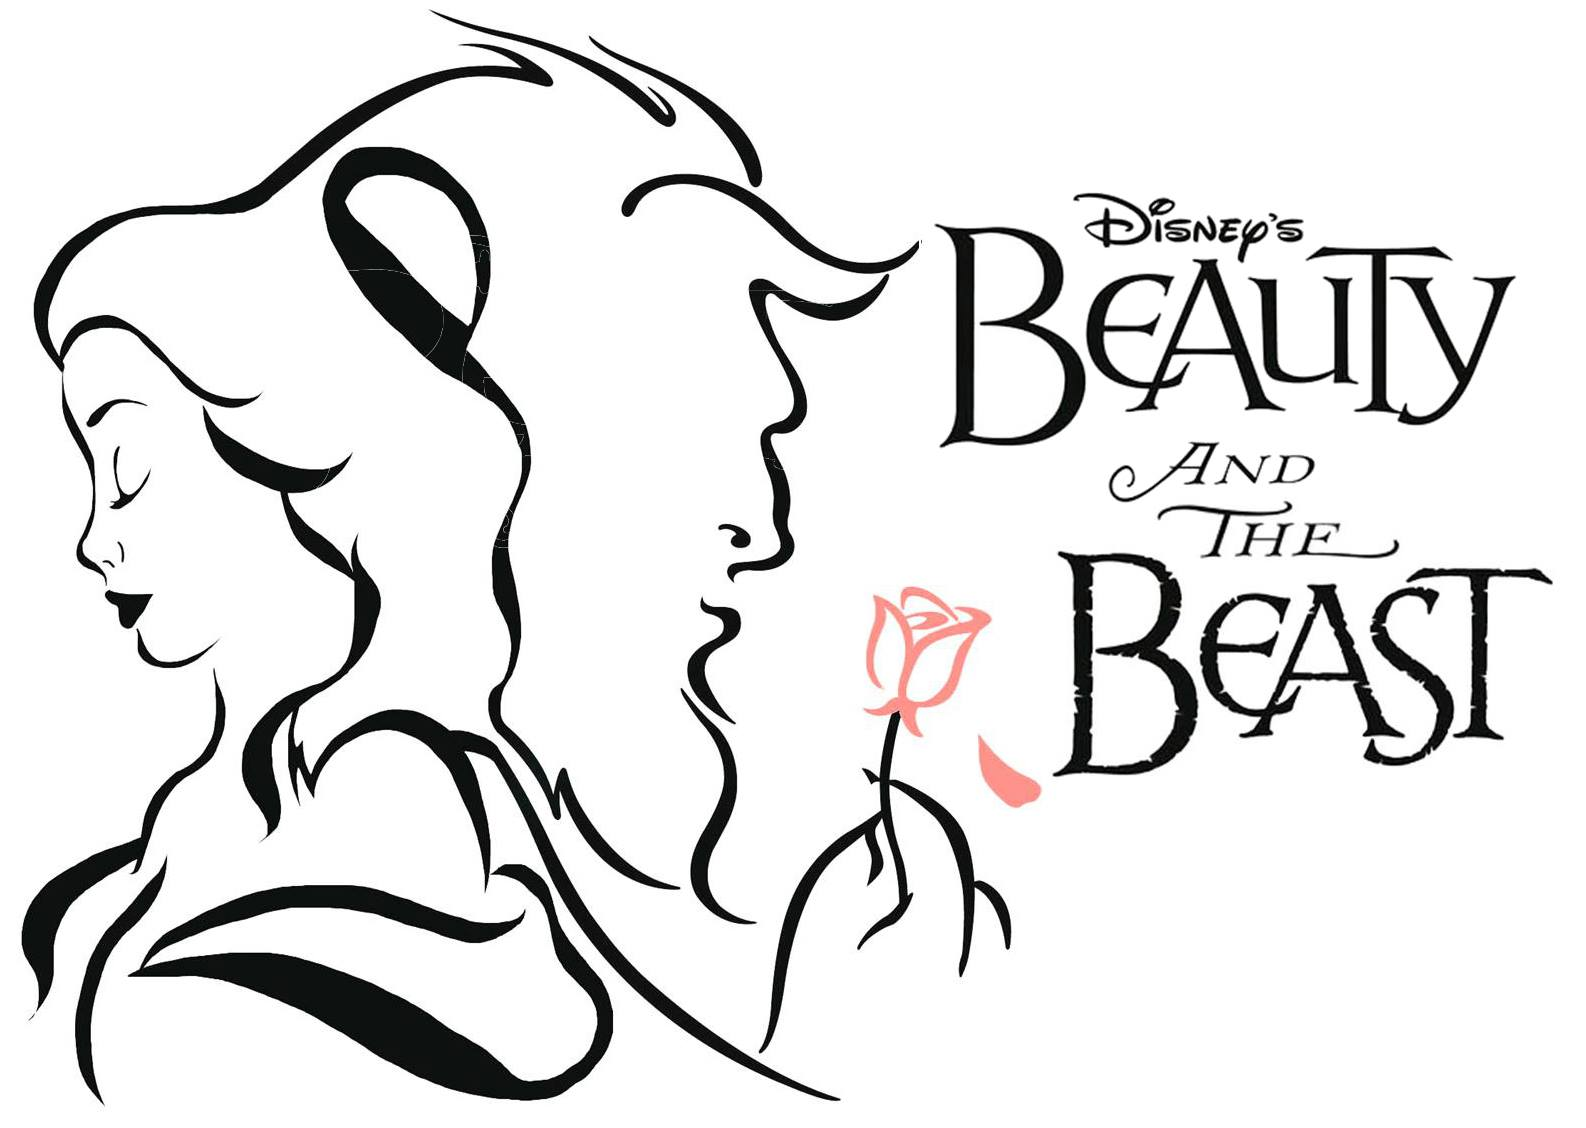 Beauty and the beast black and white clipart 4 » Clipart Station.